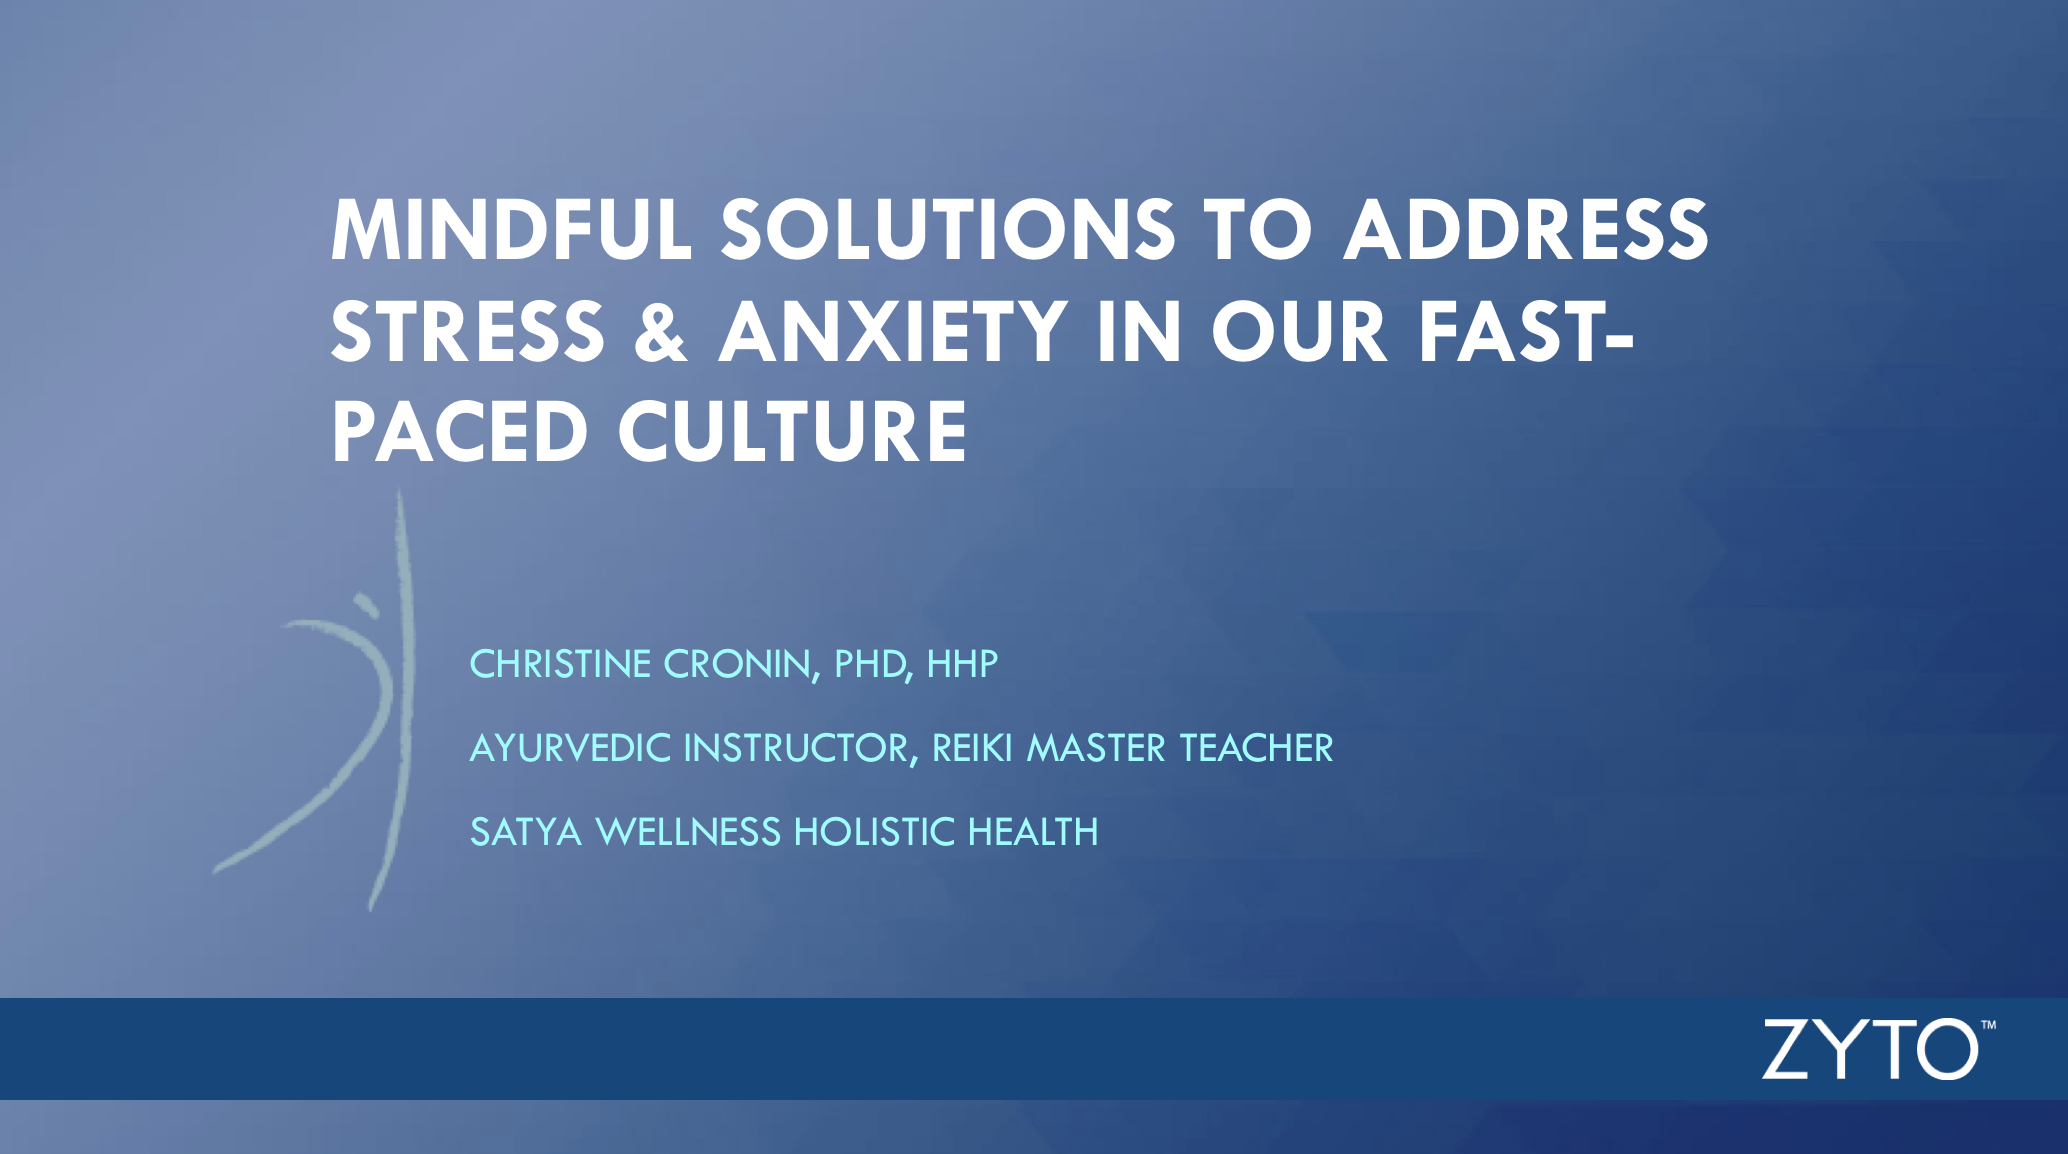 ZYTO Wellness Webinar – Mindful Solutions to Address Stress in Our Fast-Paced Culture